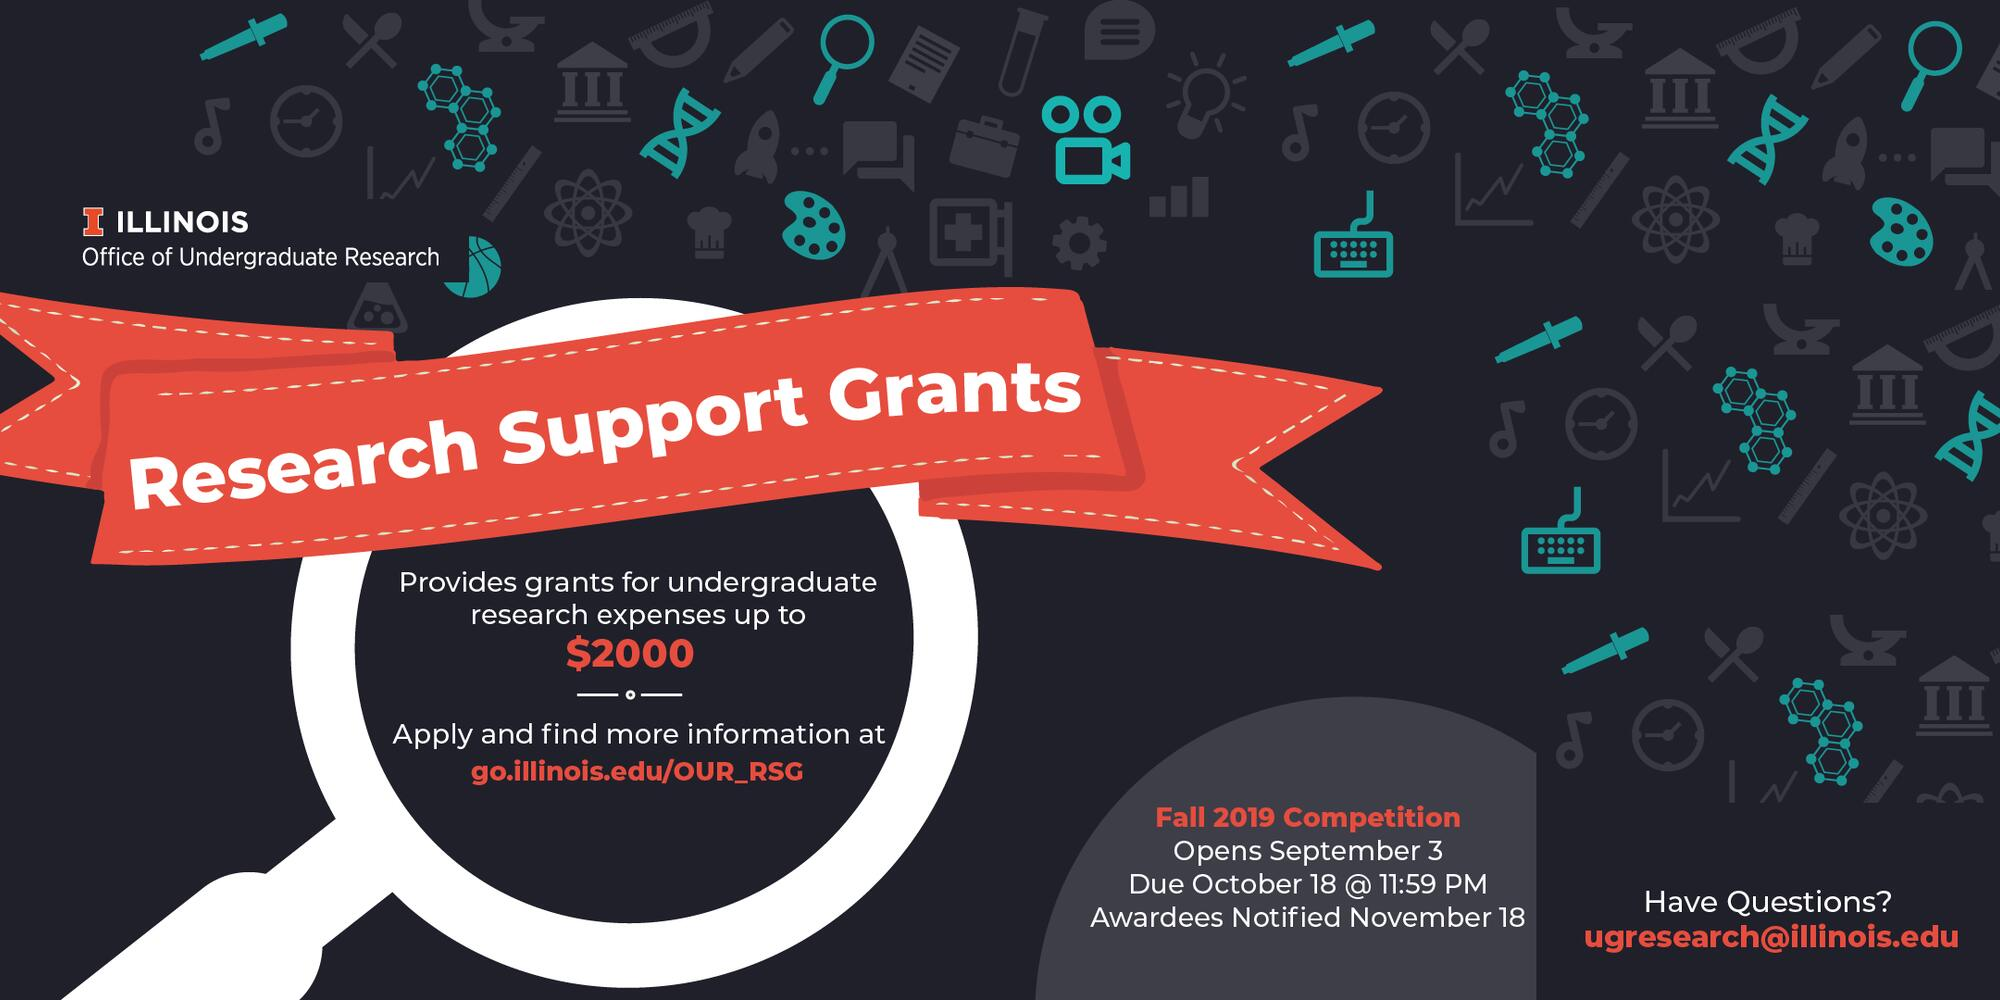 Research Support Grants Available for Undergraduates